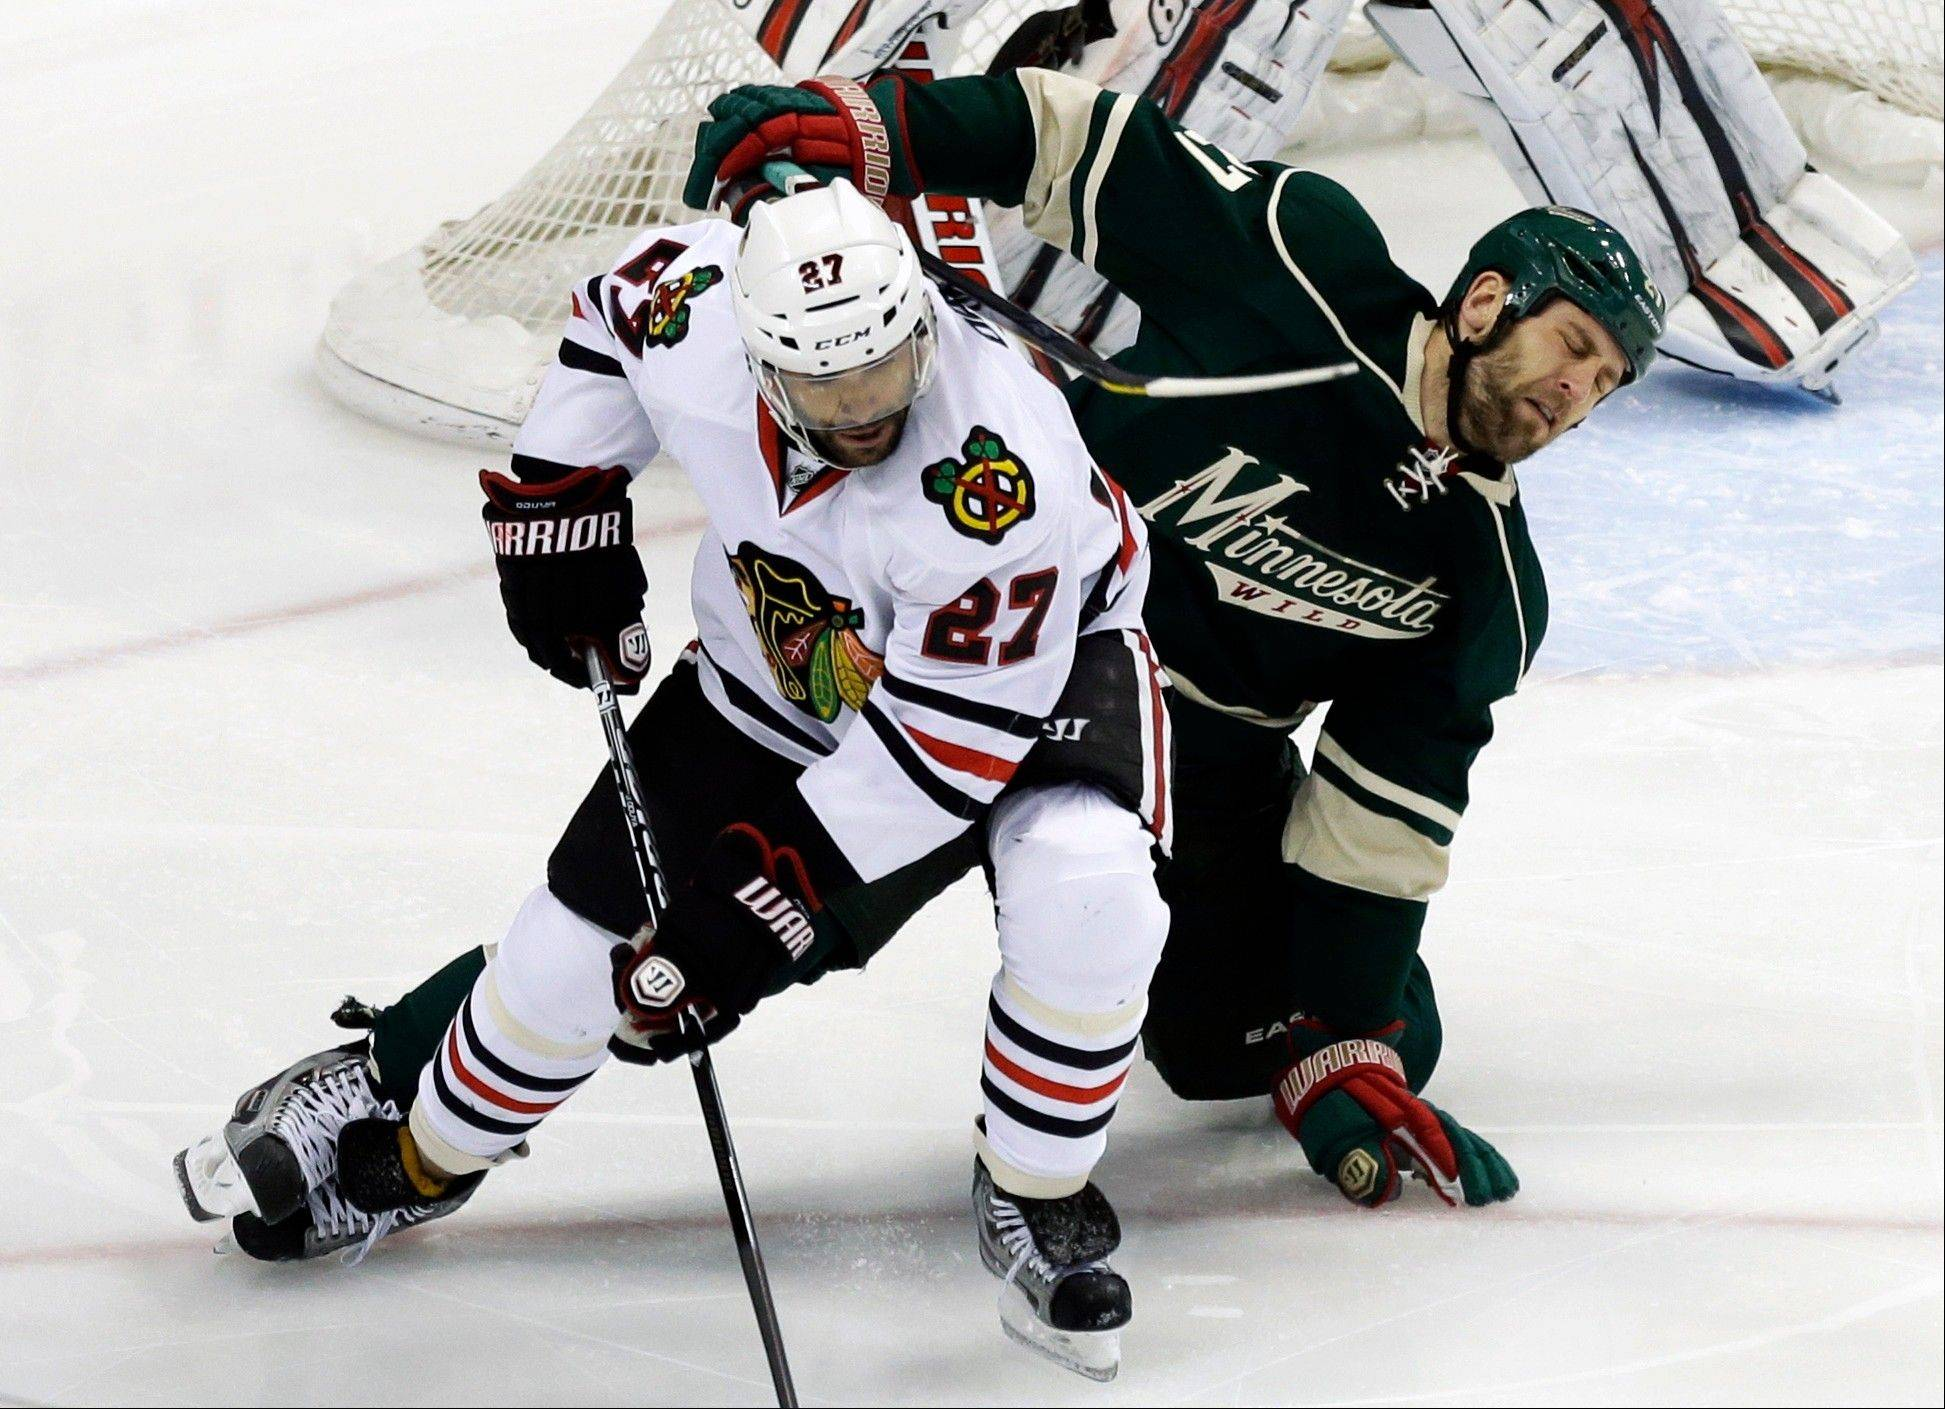 Chicago Blackhawks' Johnny Oduya, left, of Sweden, and Minnesota Wild's Mike Rupp get tangled up in a race for the puck in the first period of an NHL hockey game Tuesday, April 9, 2013 in St. Paul.